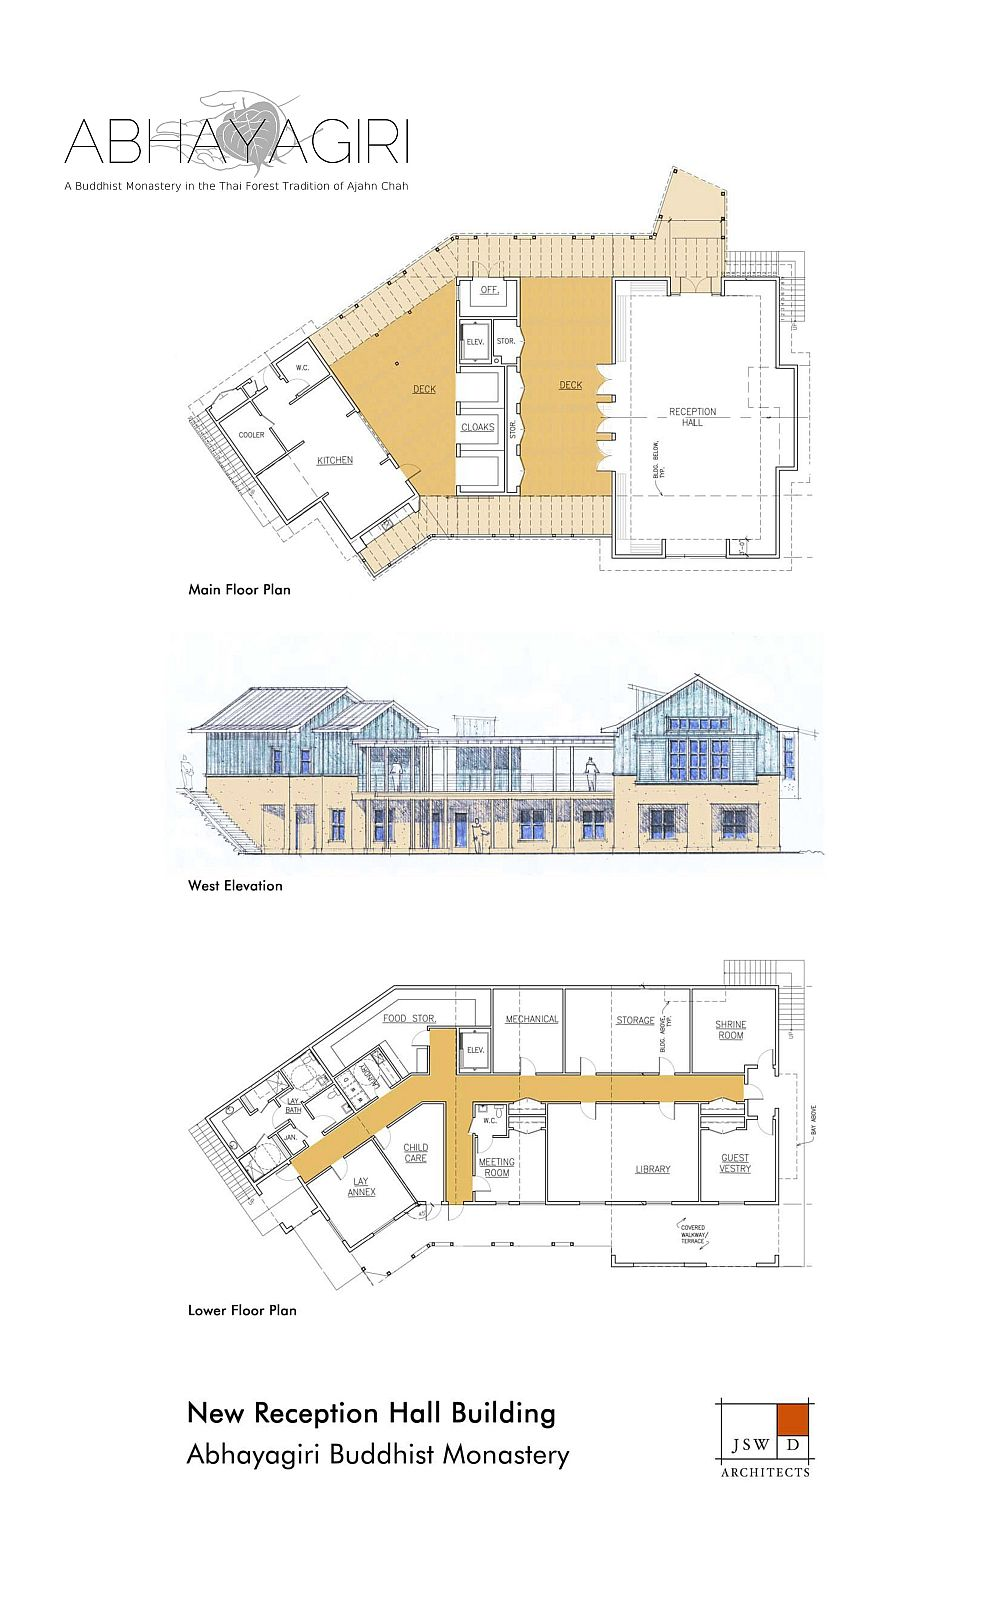 Reception hall plans